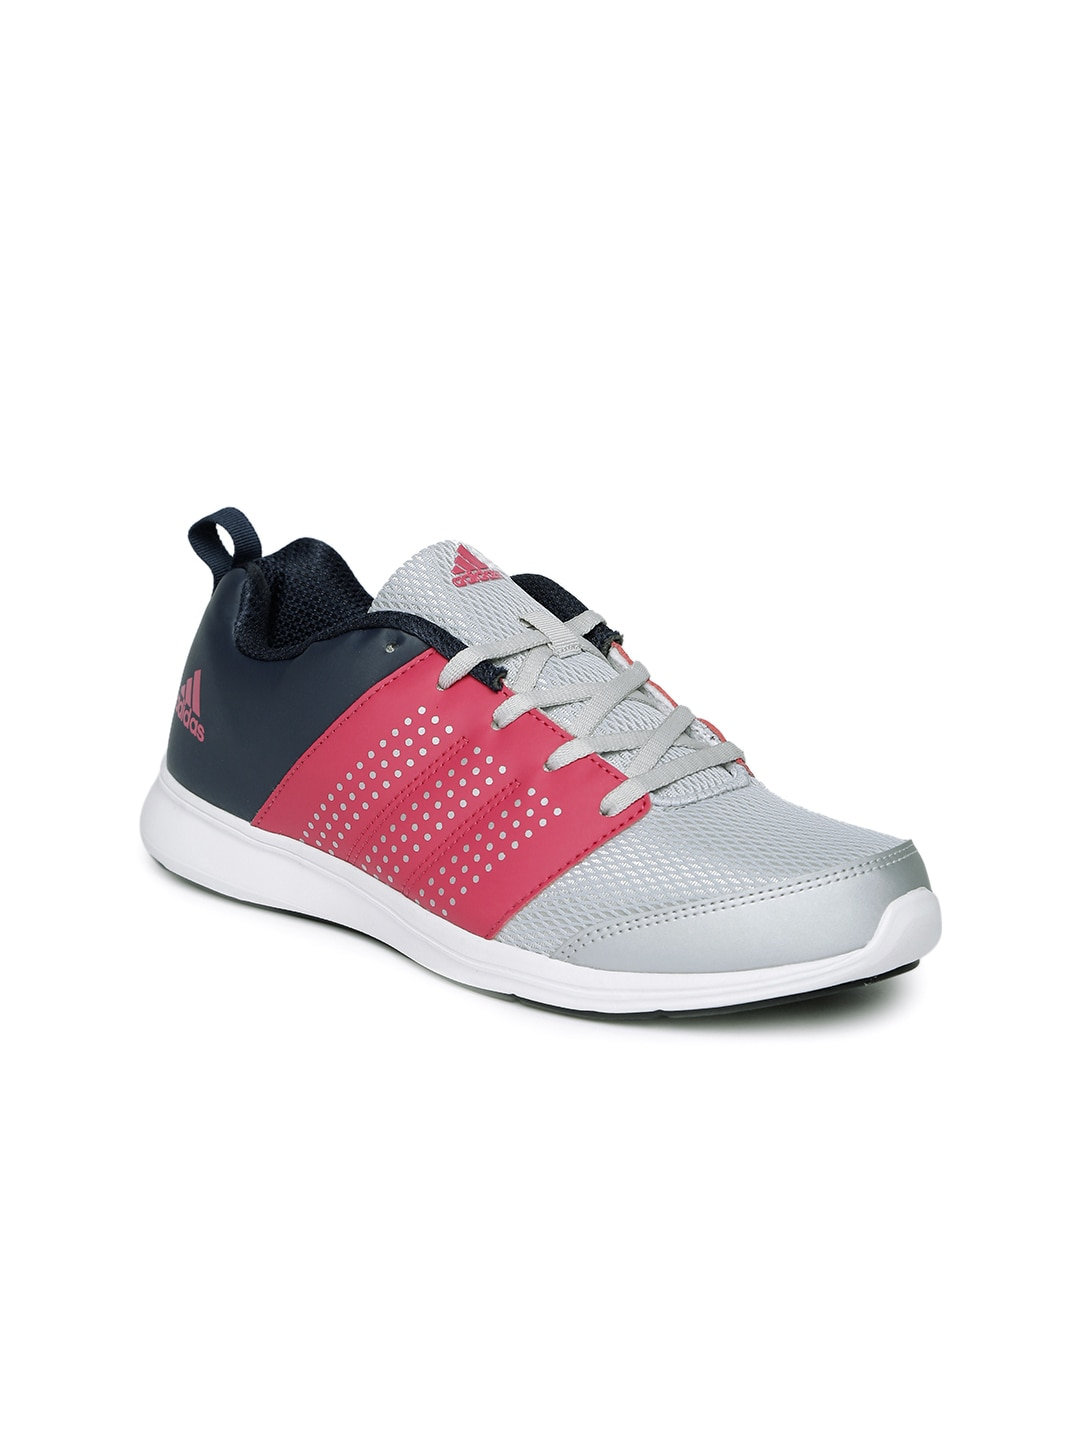 Adidas Shoes Price